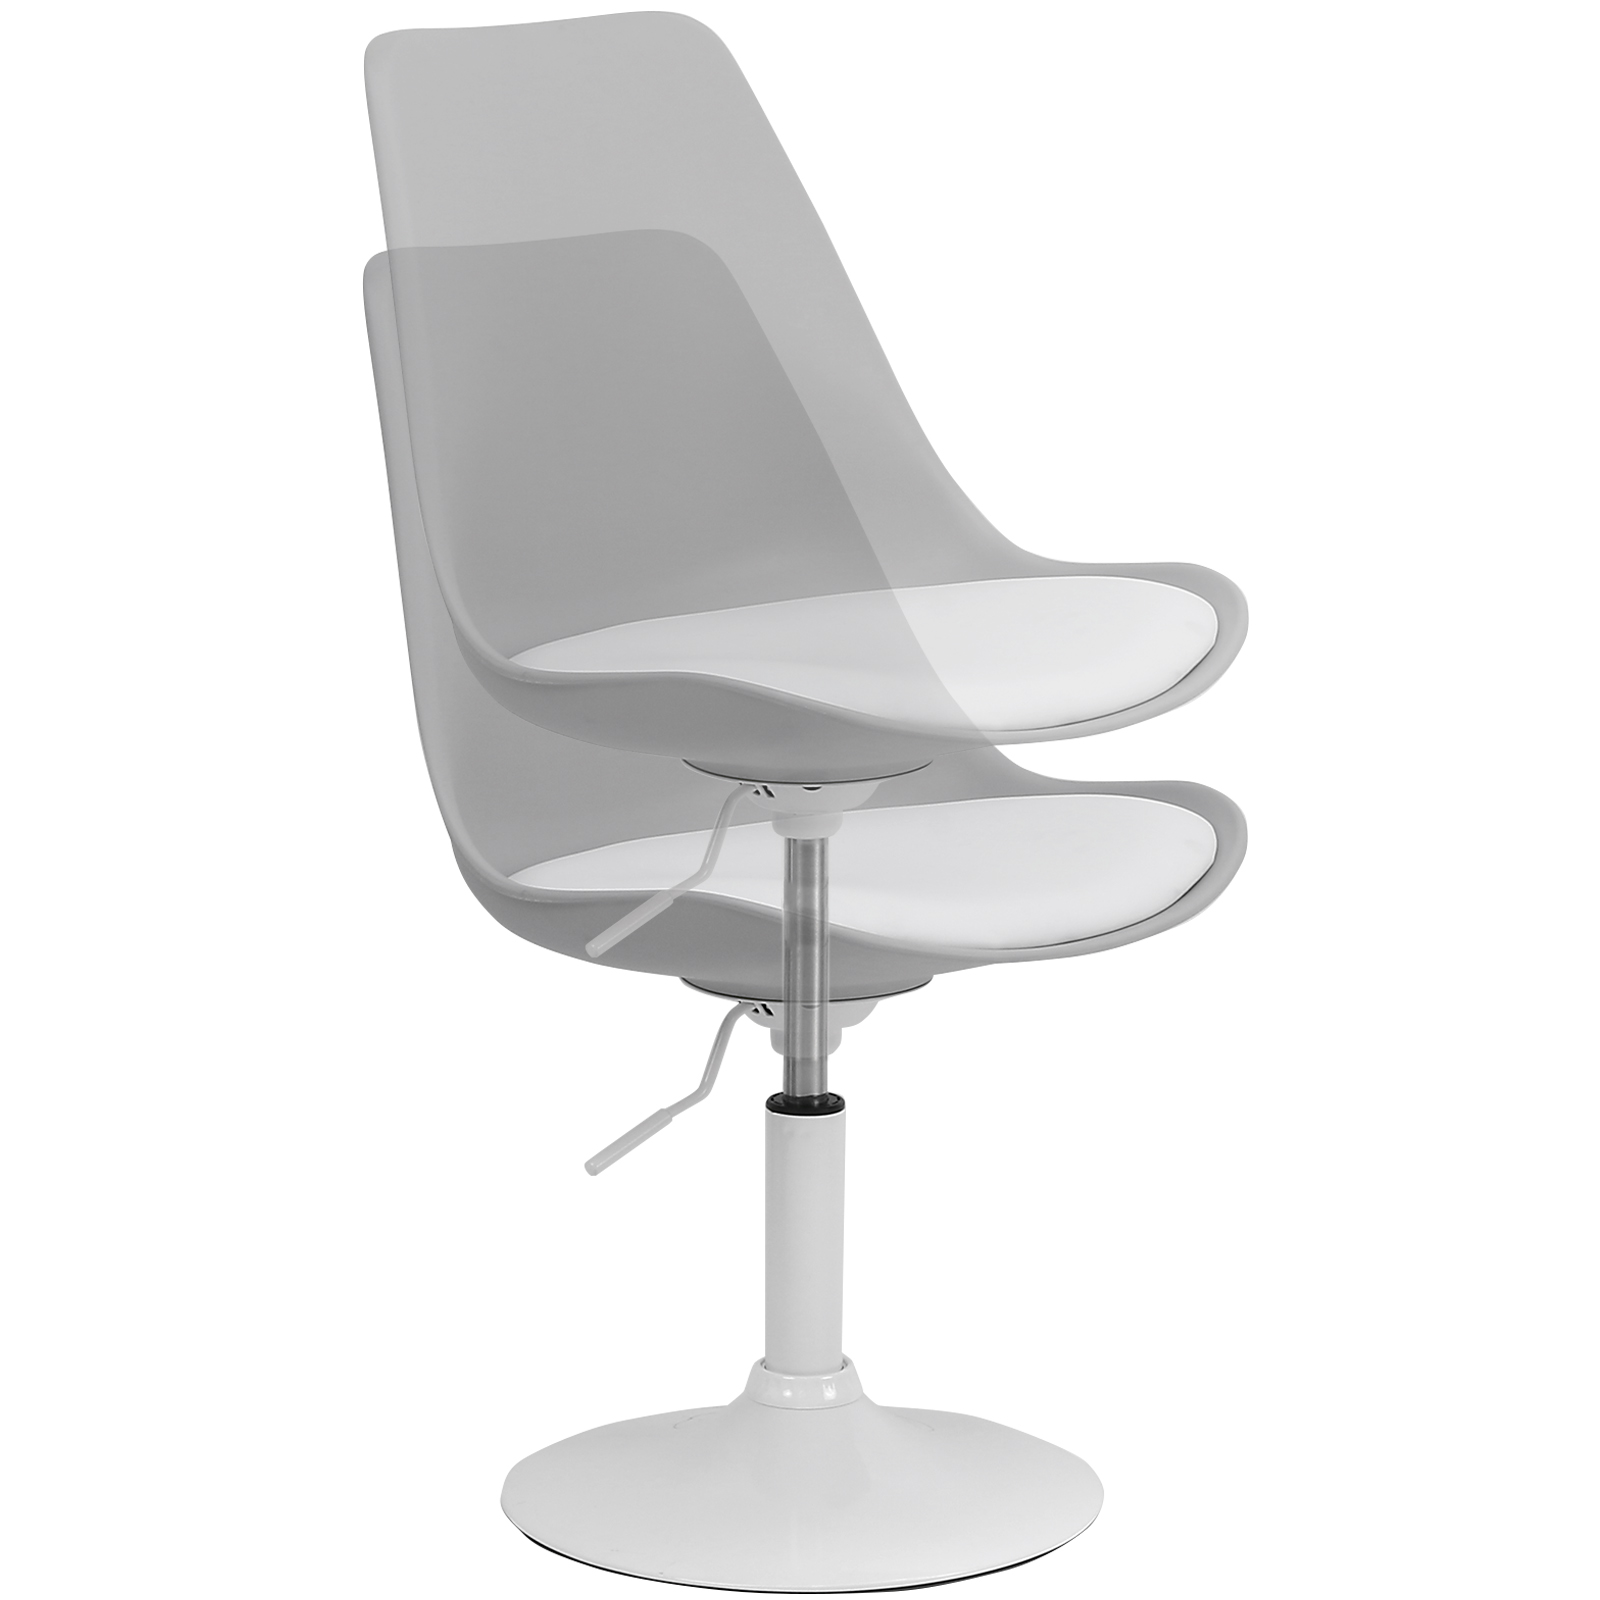 White Swivel Desk Chair Hartleys White And Grey Seat Tulip Swivel Desk Reception